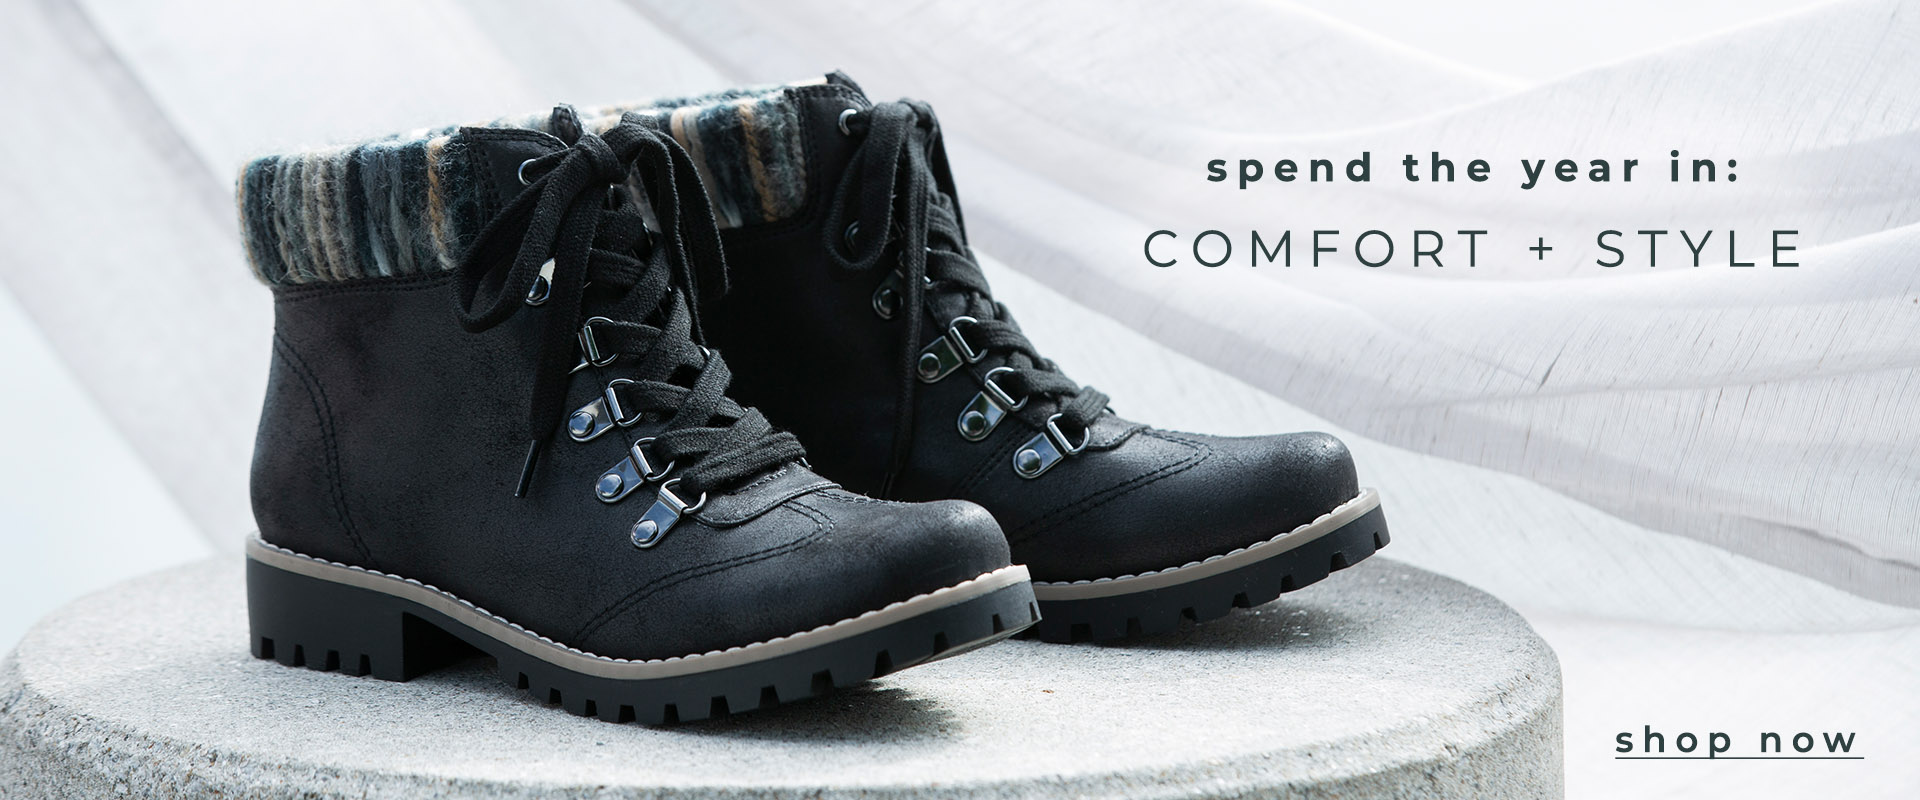 Spend The Year in: COMFORT + STYLE